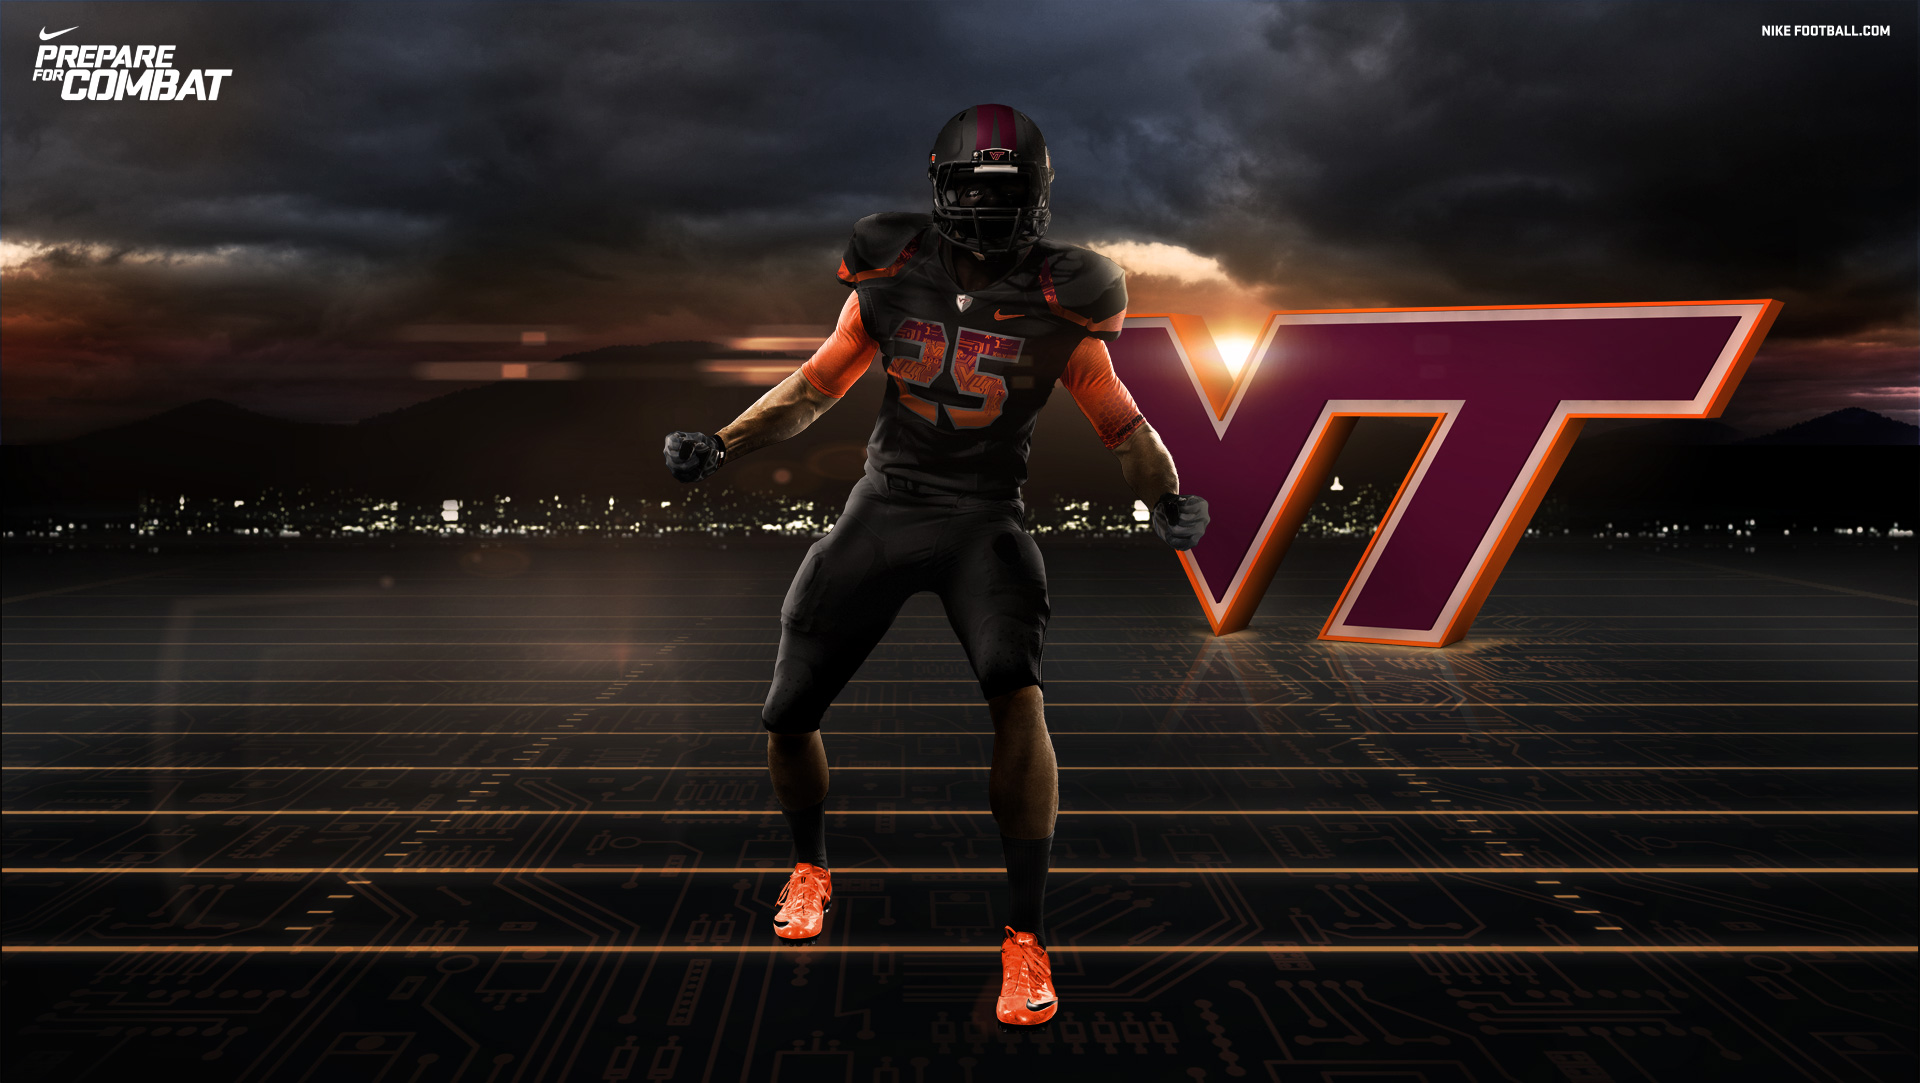 Virginia Tech Football Wallpaper